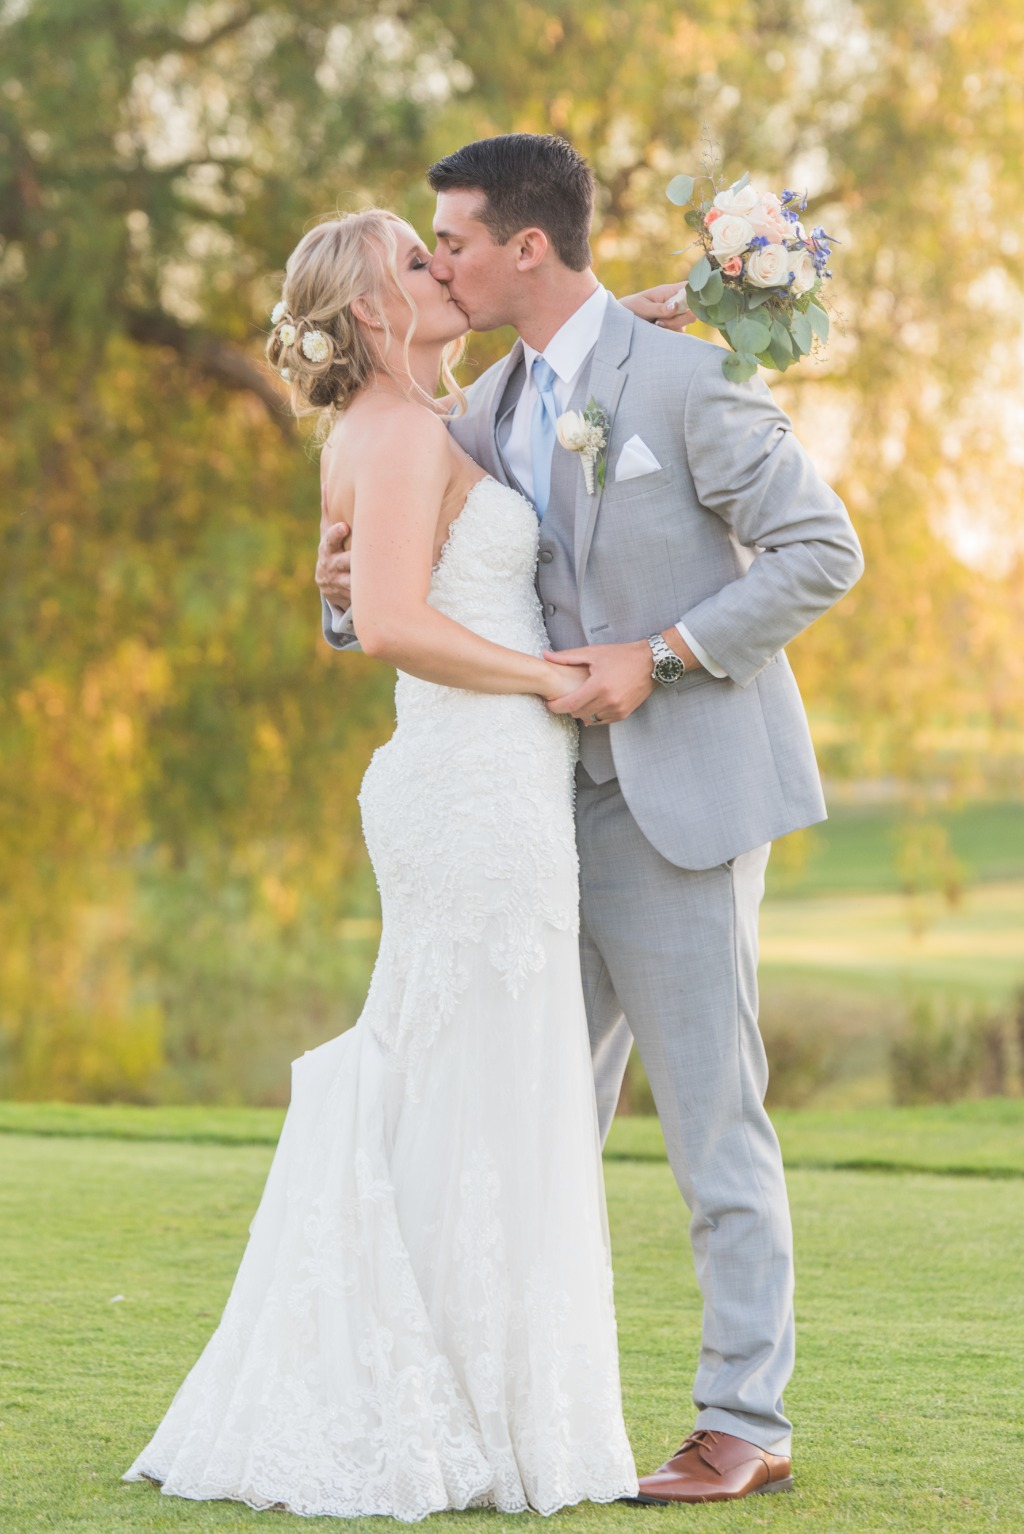 Bright, colorful, airy images. Using the golden hour light to our advantage we captured this sweet kiss.